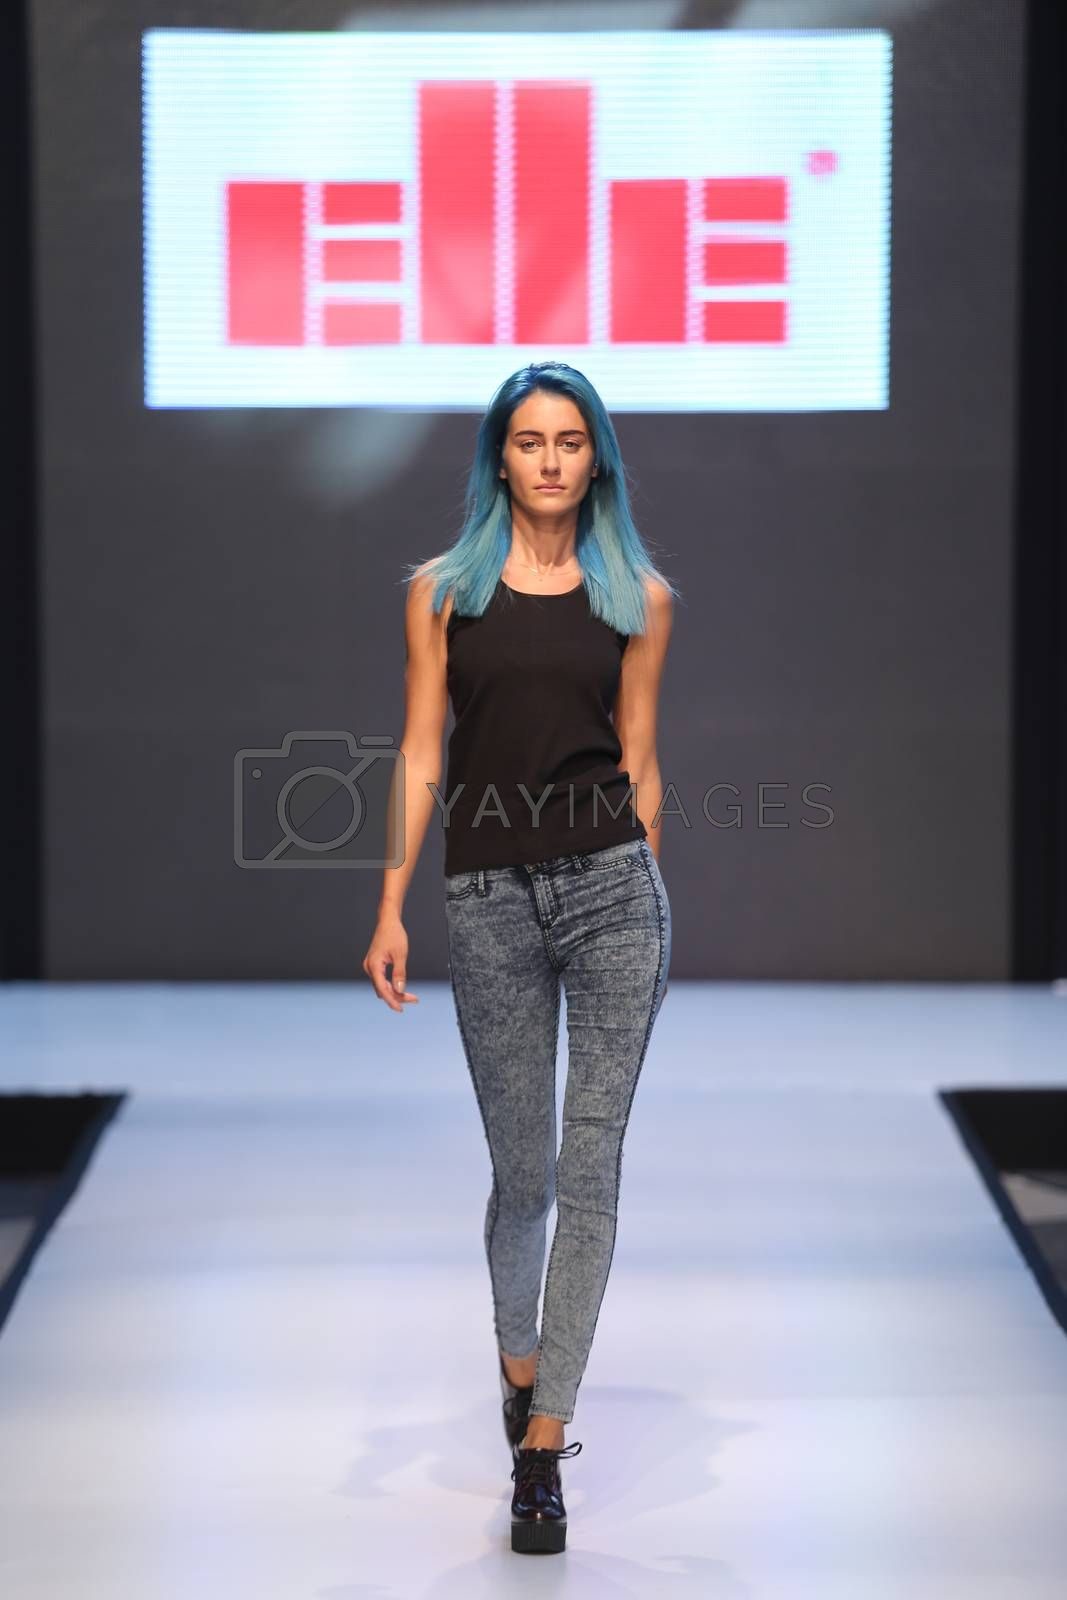 ISTANBUL, TURKEY - OCTOBER 10, 2015: A model showcases one of the latest creations of Elle in Forum Fashion Week